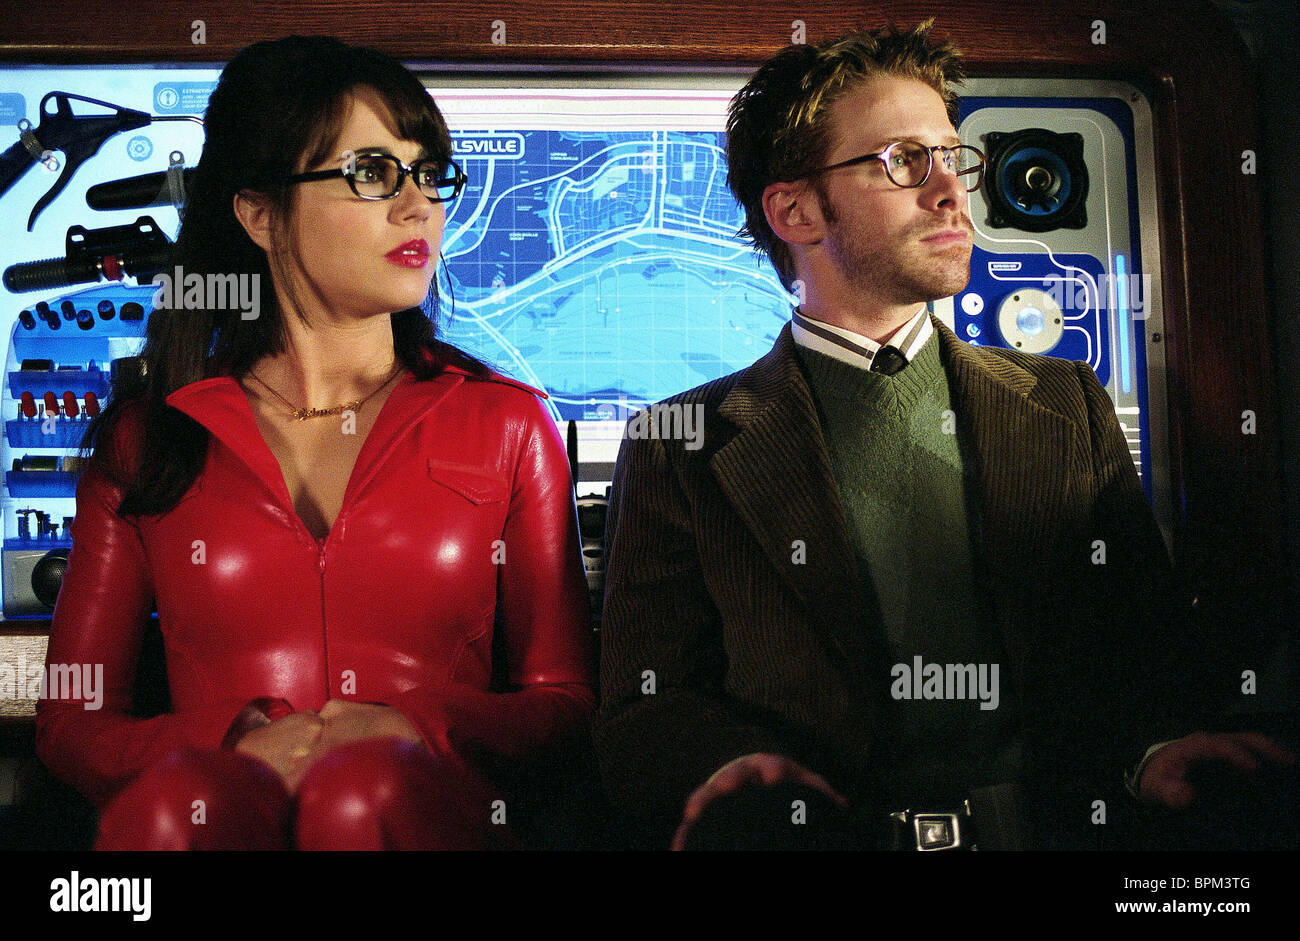 Page 2 Scooby Doo 2 Monsters Unleashed High Resolution Stock Photography And Images Alamy